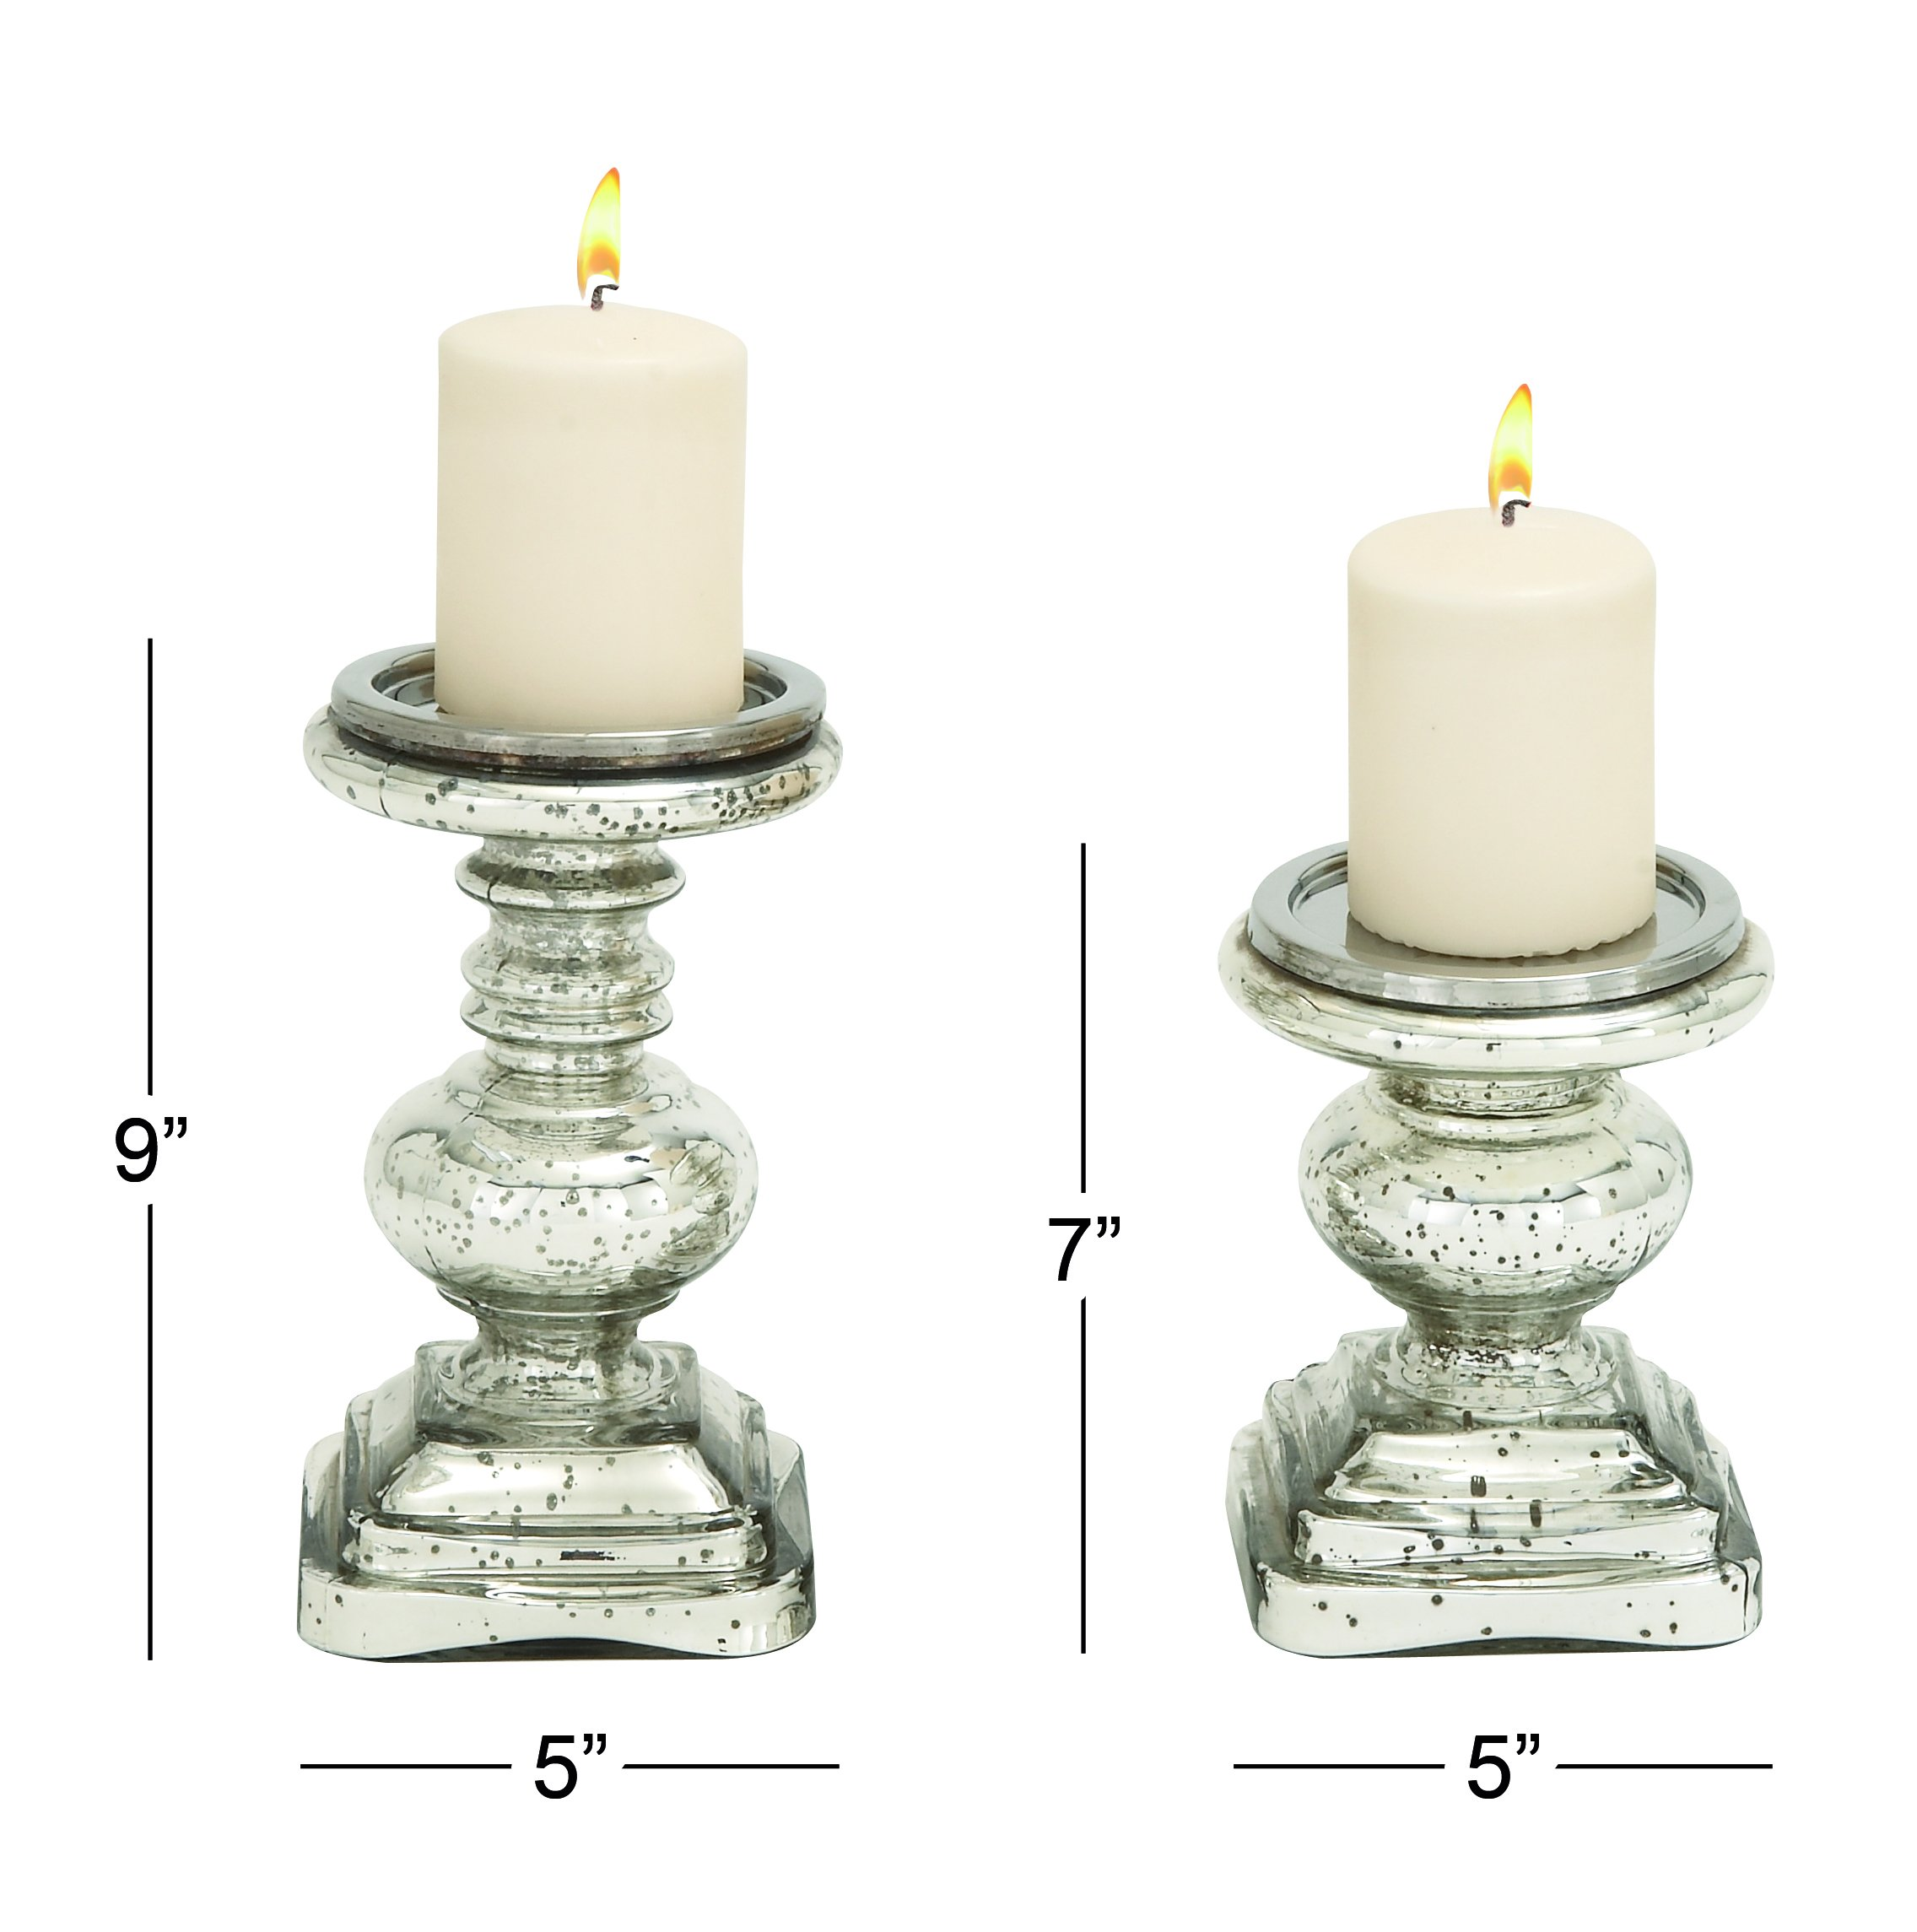 Deco 79 28883 Glass Candleholder Set of 2 by Deco 79 (Image #2)